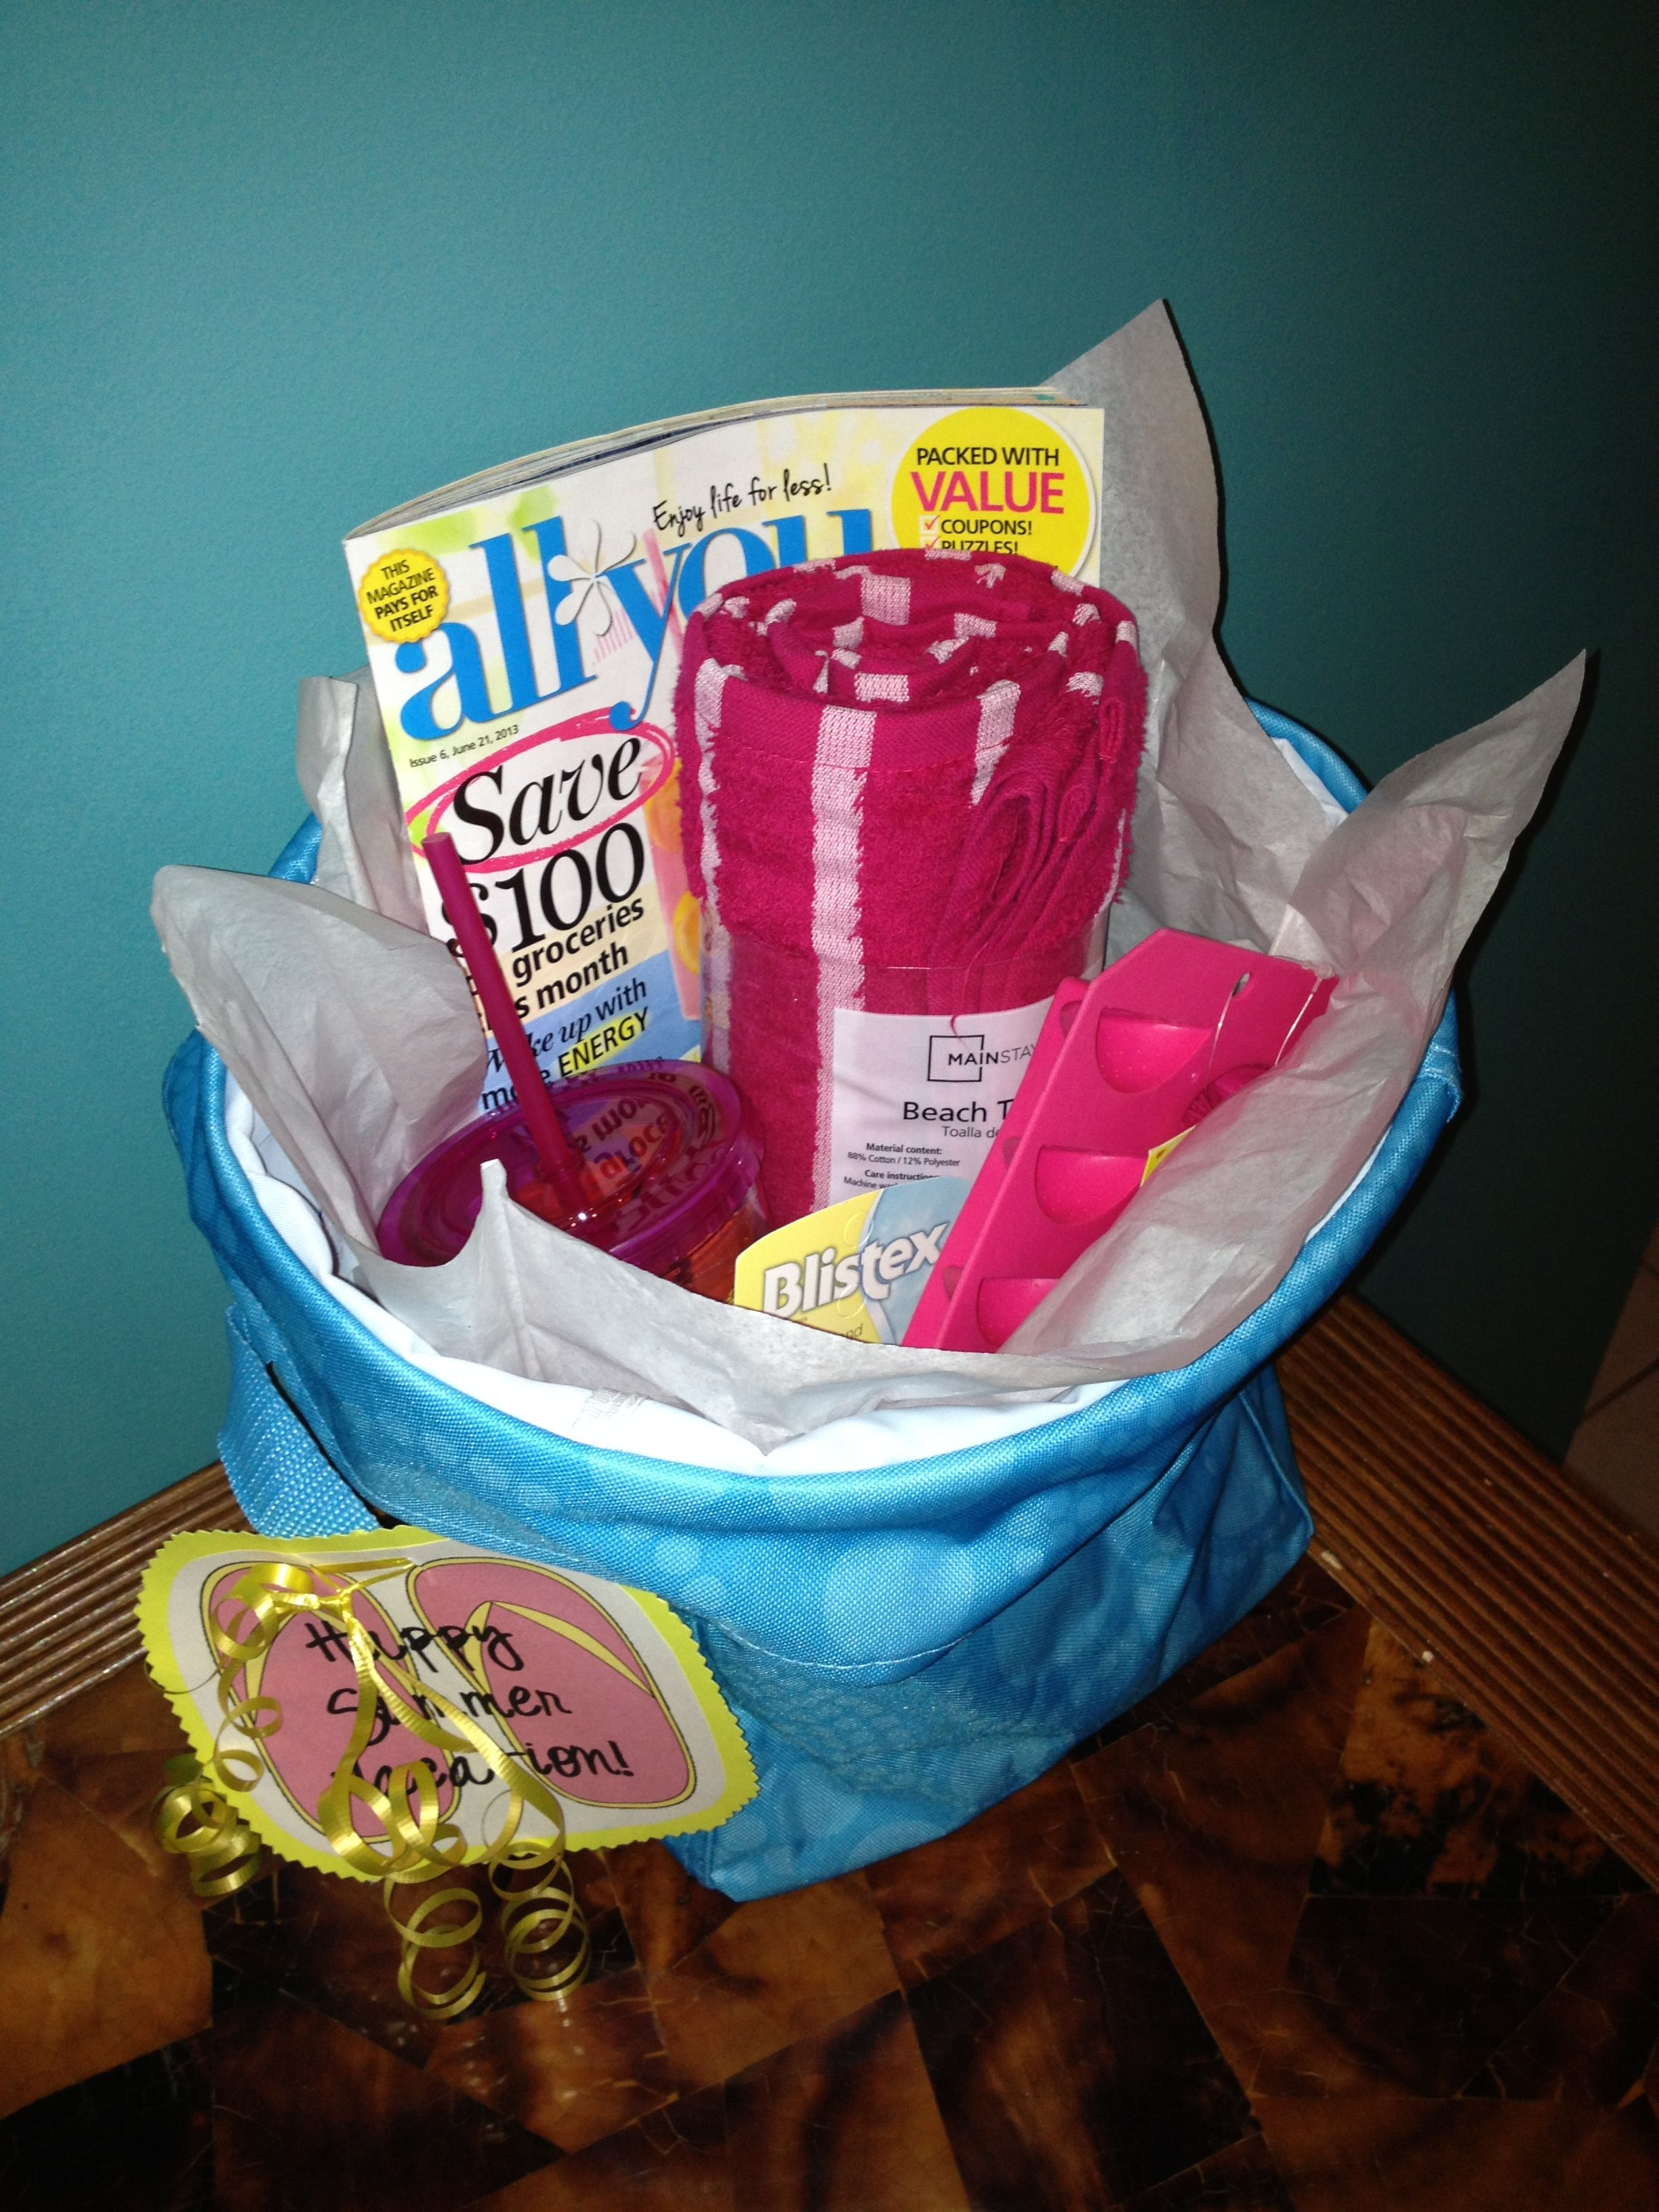 Happy Summer gift basket! Towel, Chapstick, aloe, sun screen, ice cube tray, thermal cup with straw and lemonade/iced tea packets. Summer essentials!